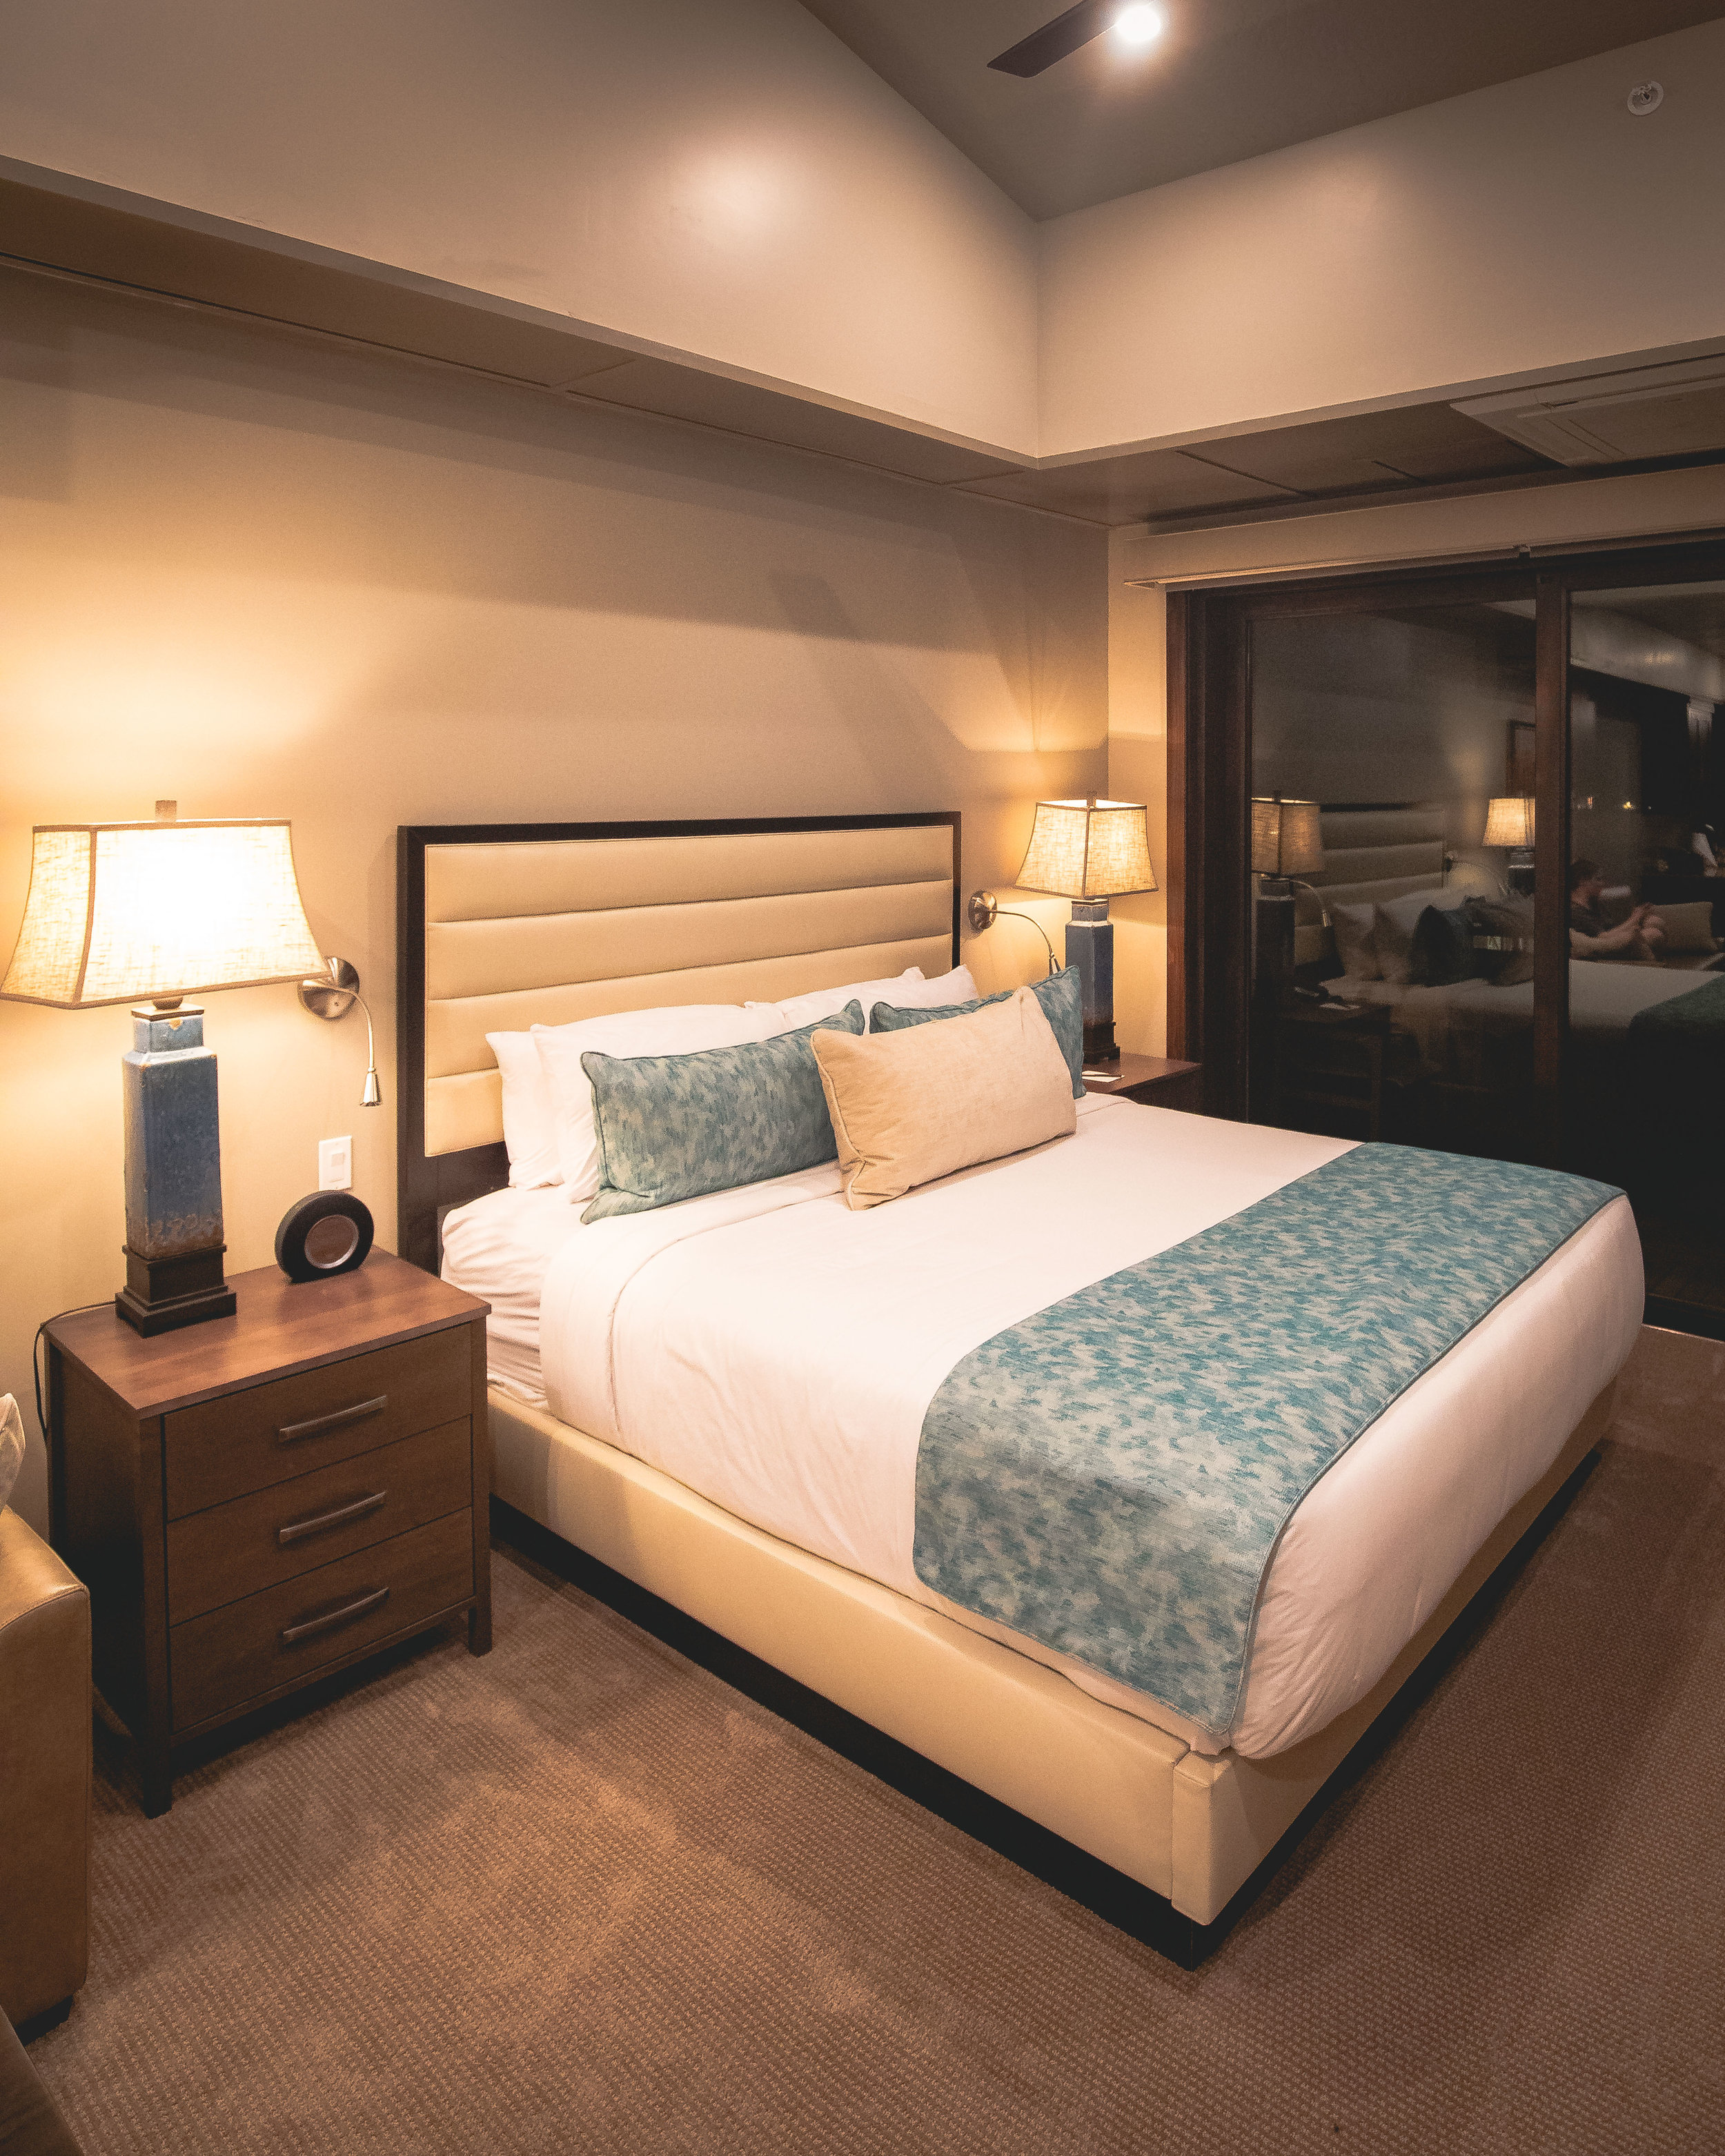 The rooms at Cable Mountain Lodge